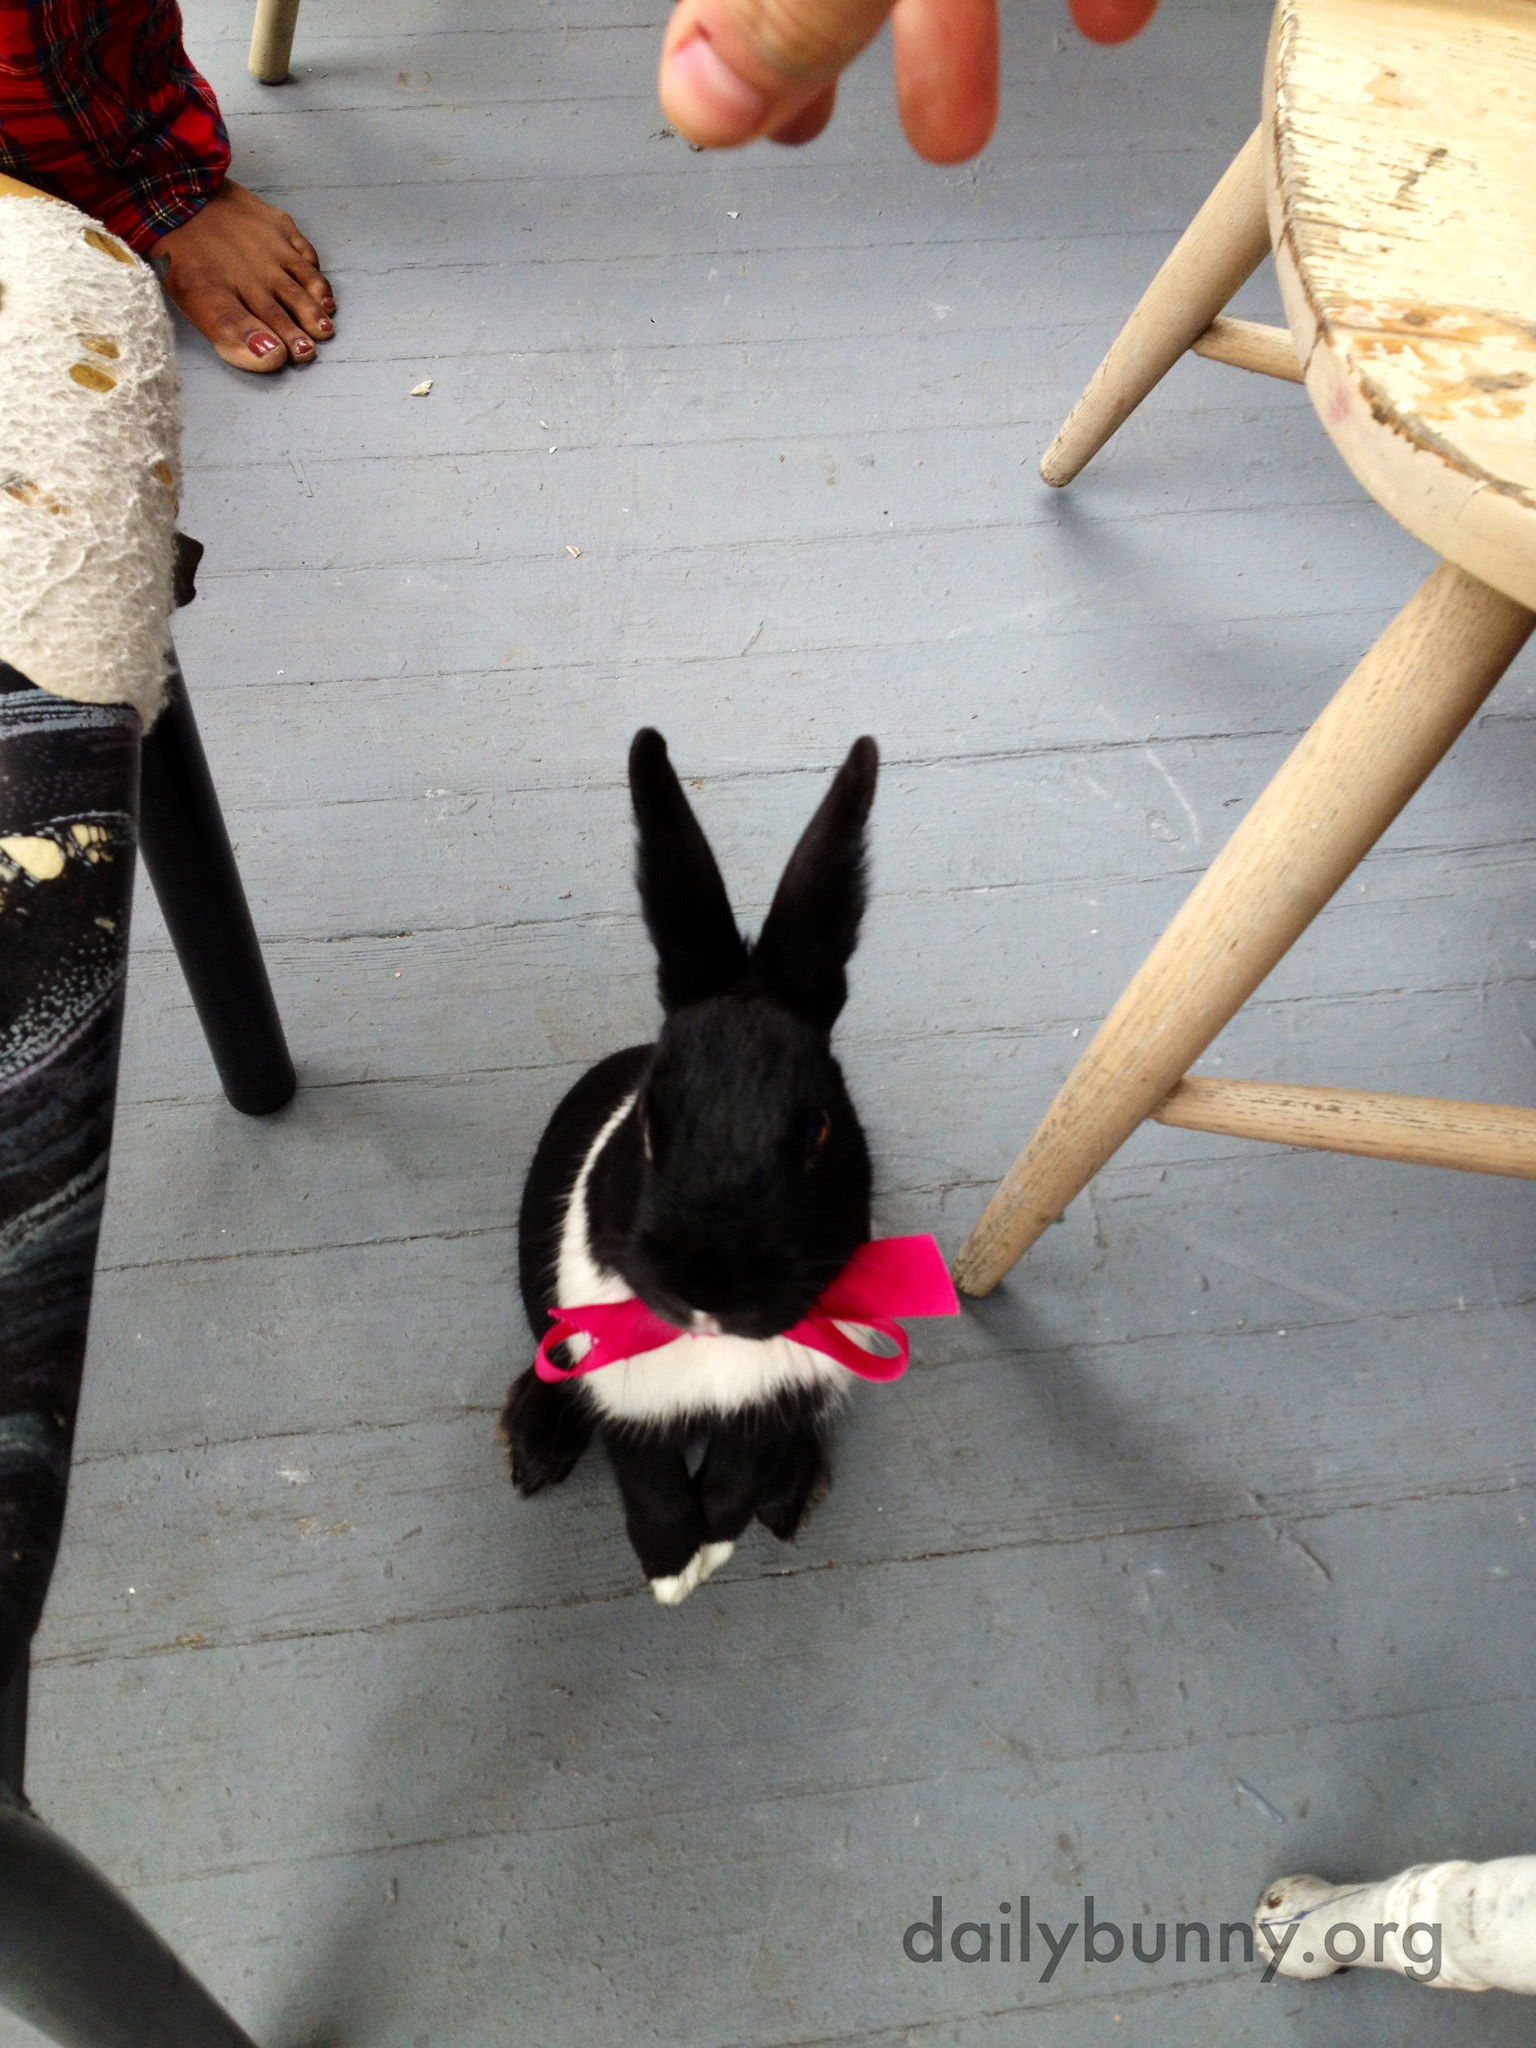 The Daily Bunny's Easter 2014 Mega-Post! 13